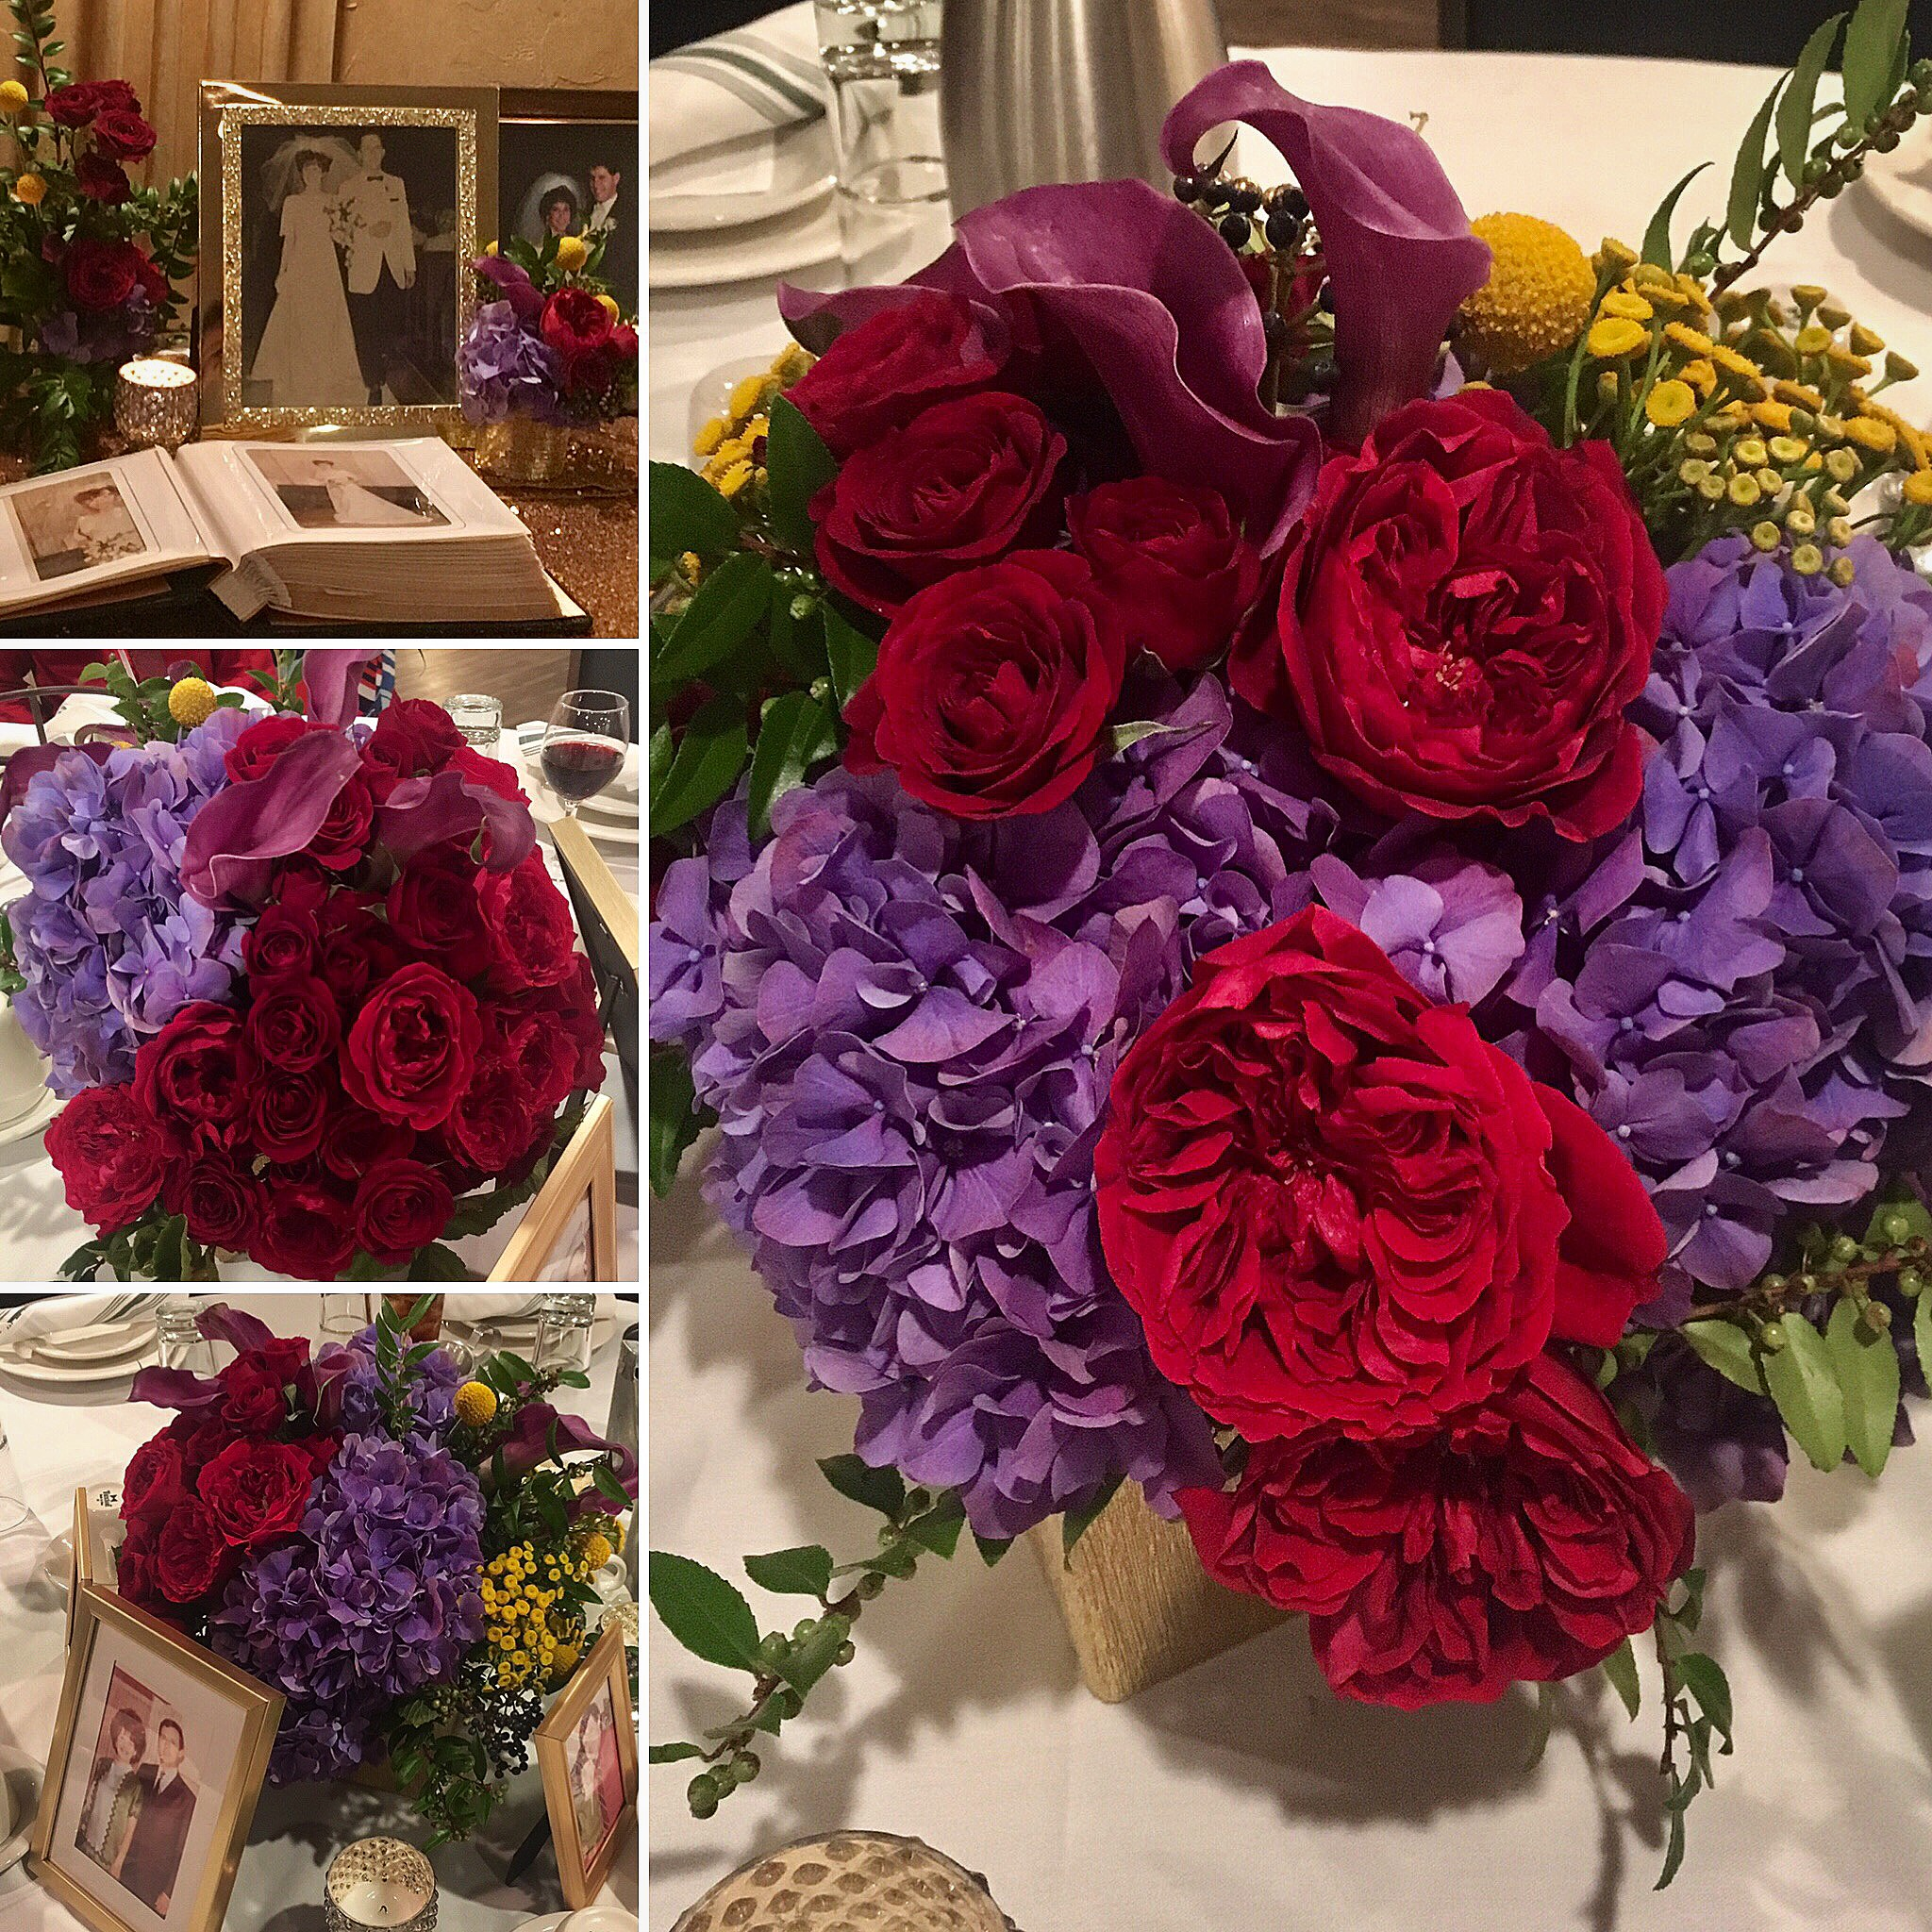 """Cheryl Morley - """"Happy Anniversary Mom & Dad!! And a world of thanks to @mcdesignsinc for the design and amazing floral decor for the event. Everyone was speechless and wanted to know """"who did your flowers?"""""""""""